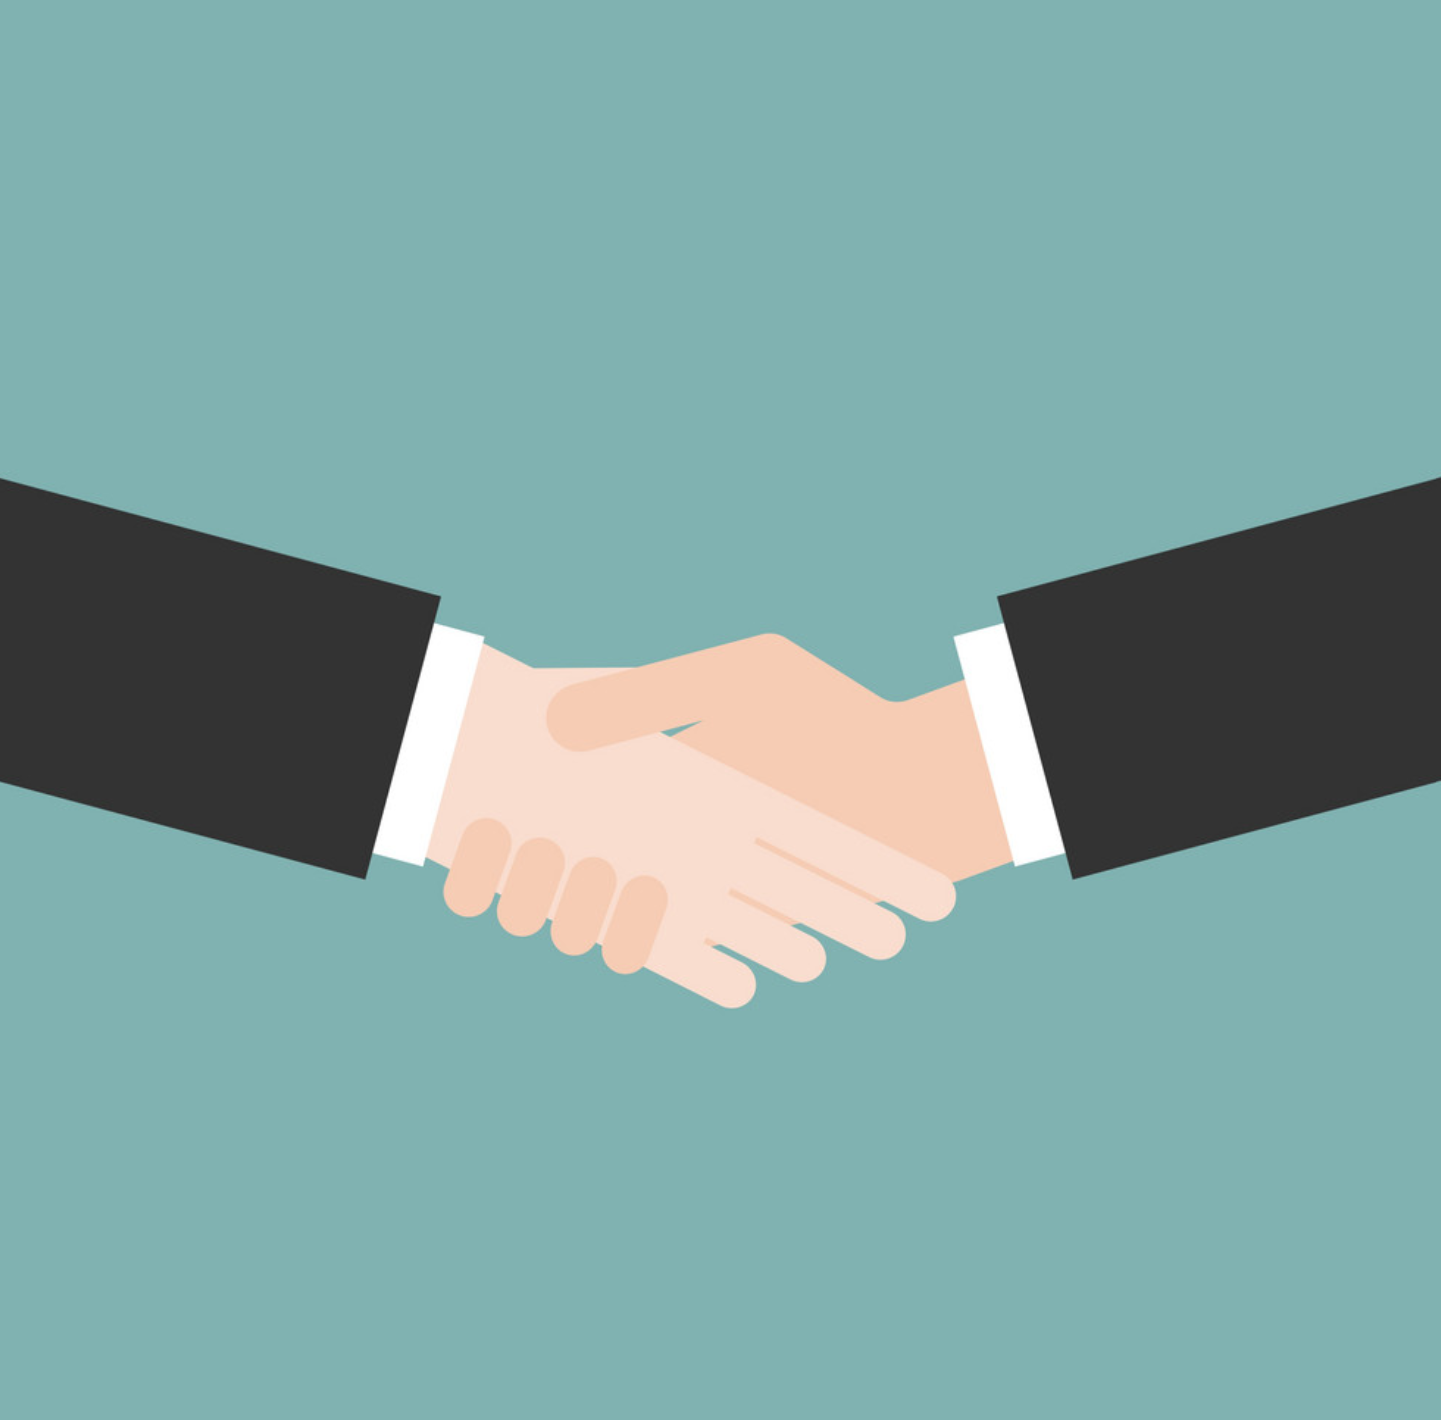 20190828_shake hands illustration_png.png